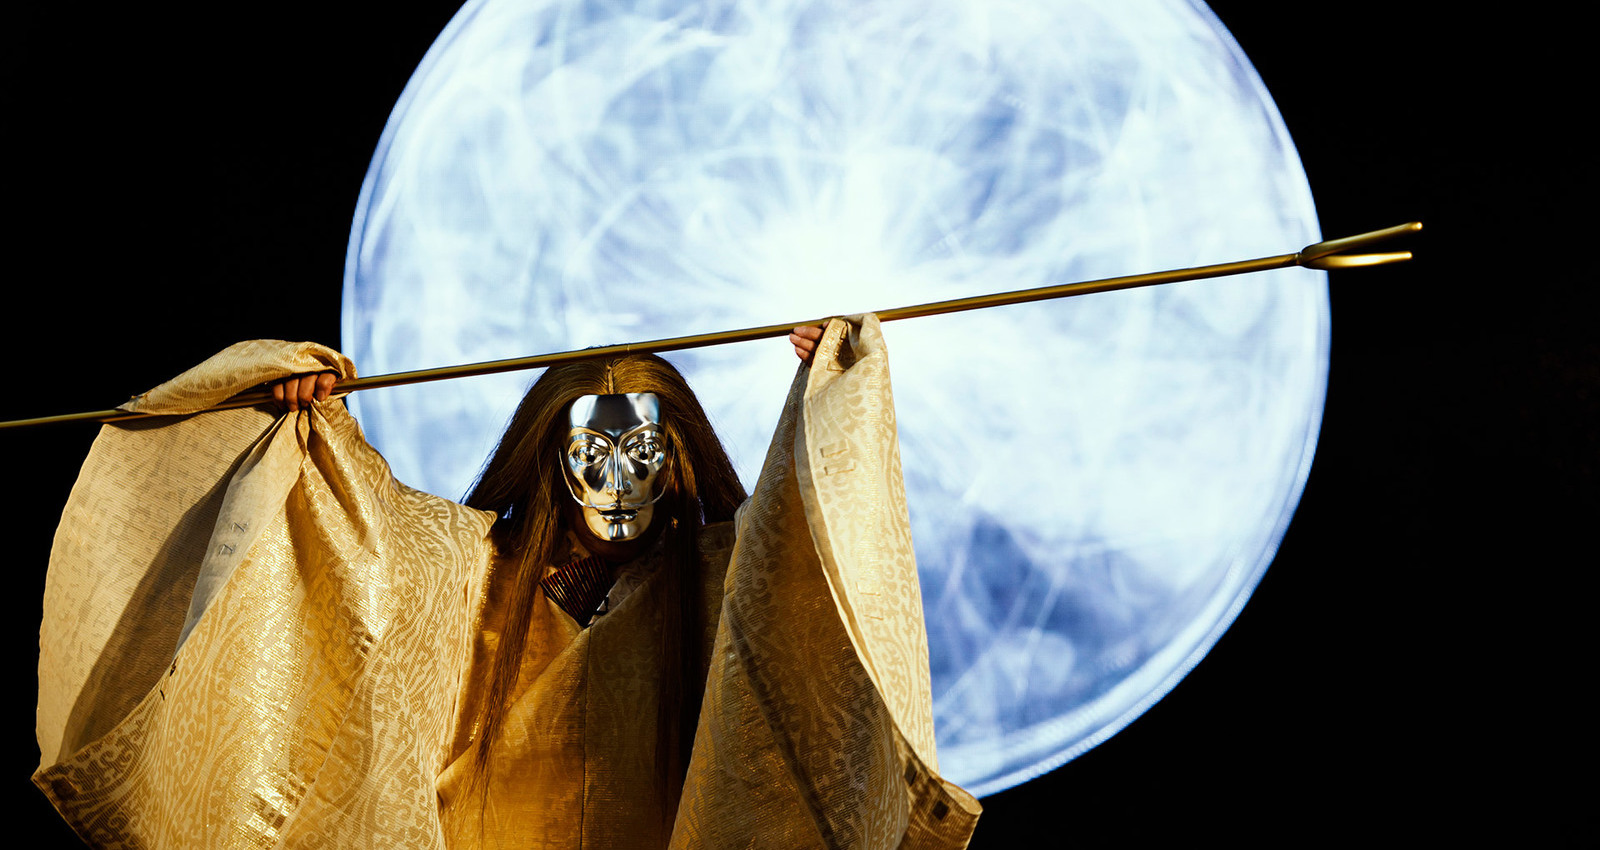 DALI-NOH: Dali back from the beyond